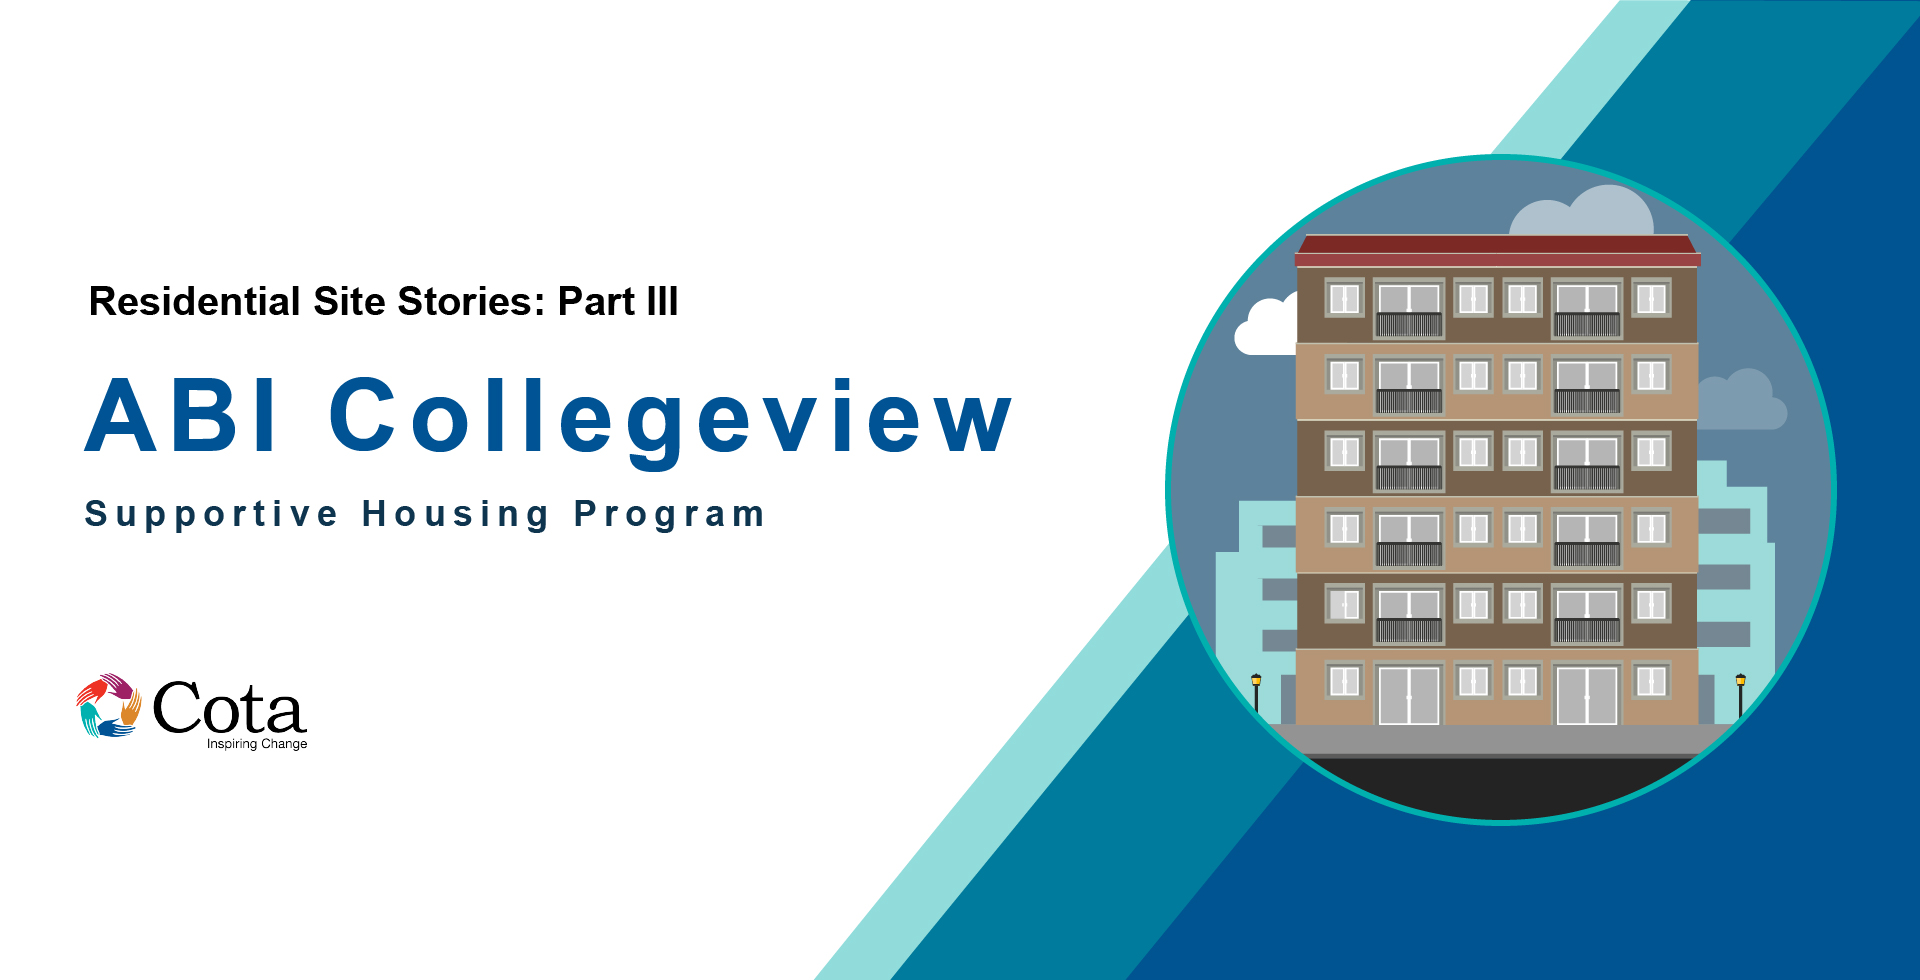 Residential Site Stories III: ABI Collegeview Supportive Housing Program